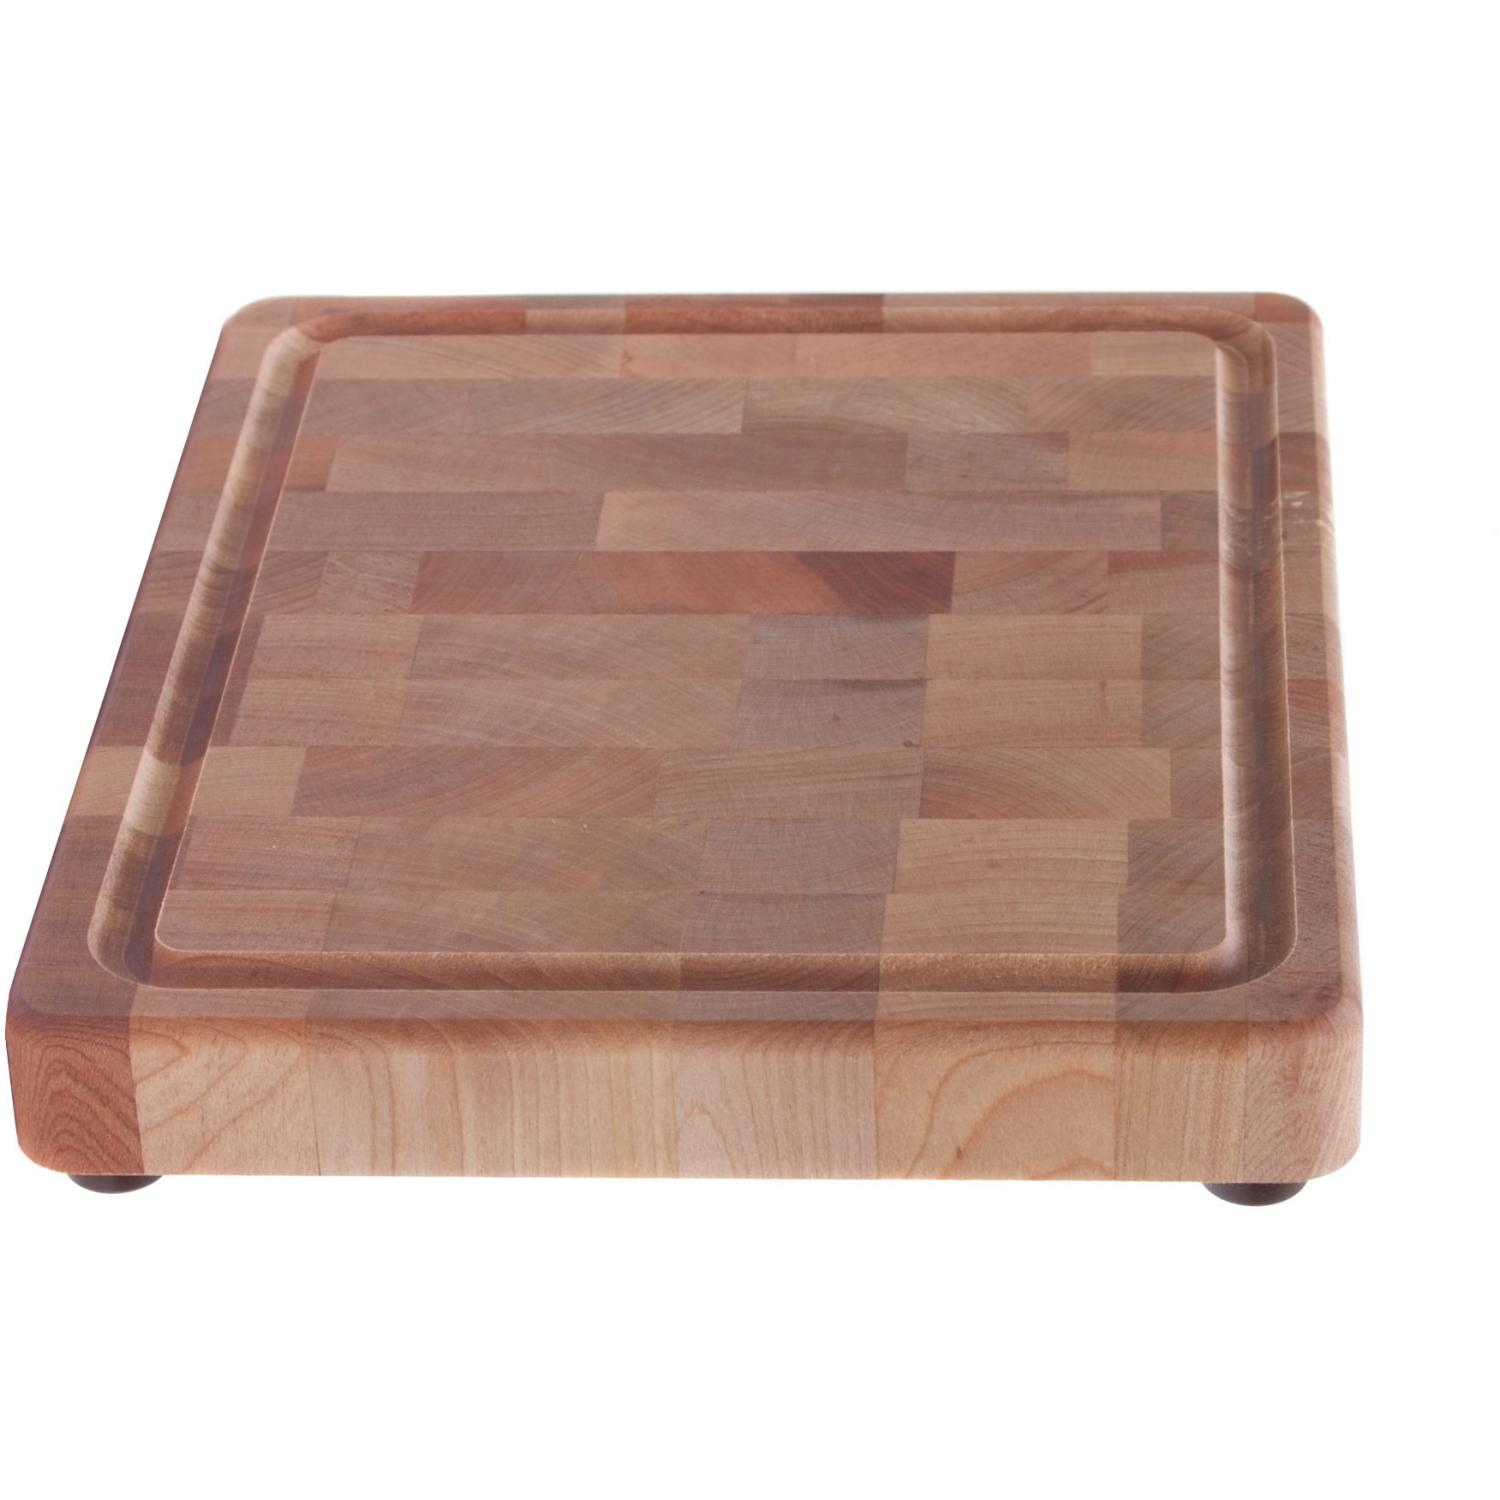 End Grain Board W/Groove And Rubber Feet